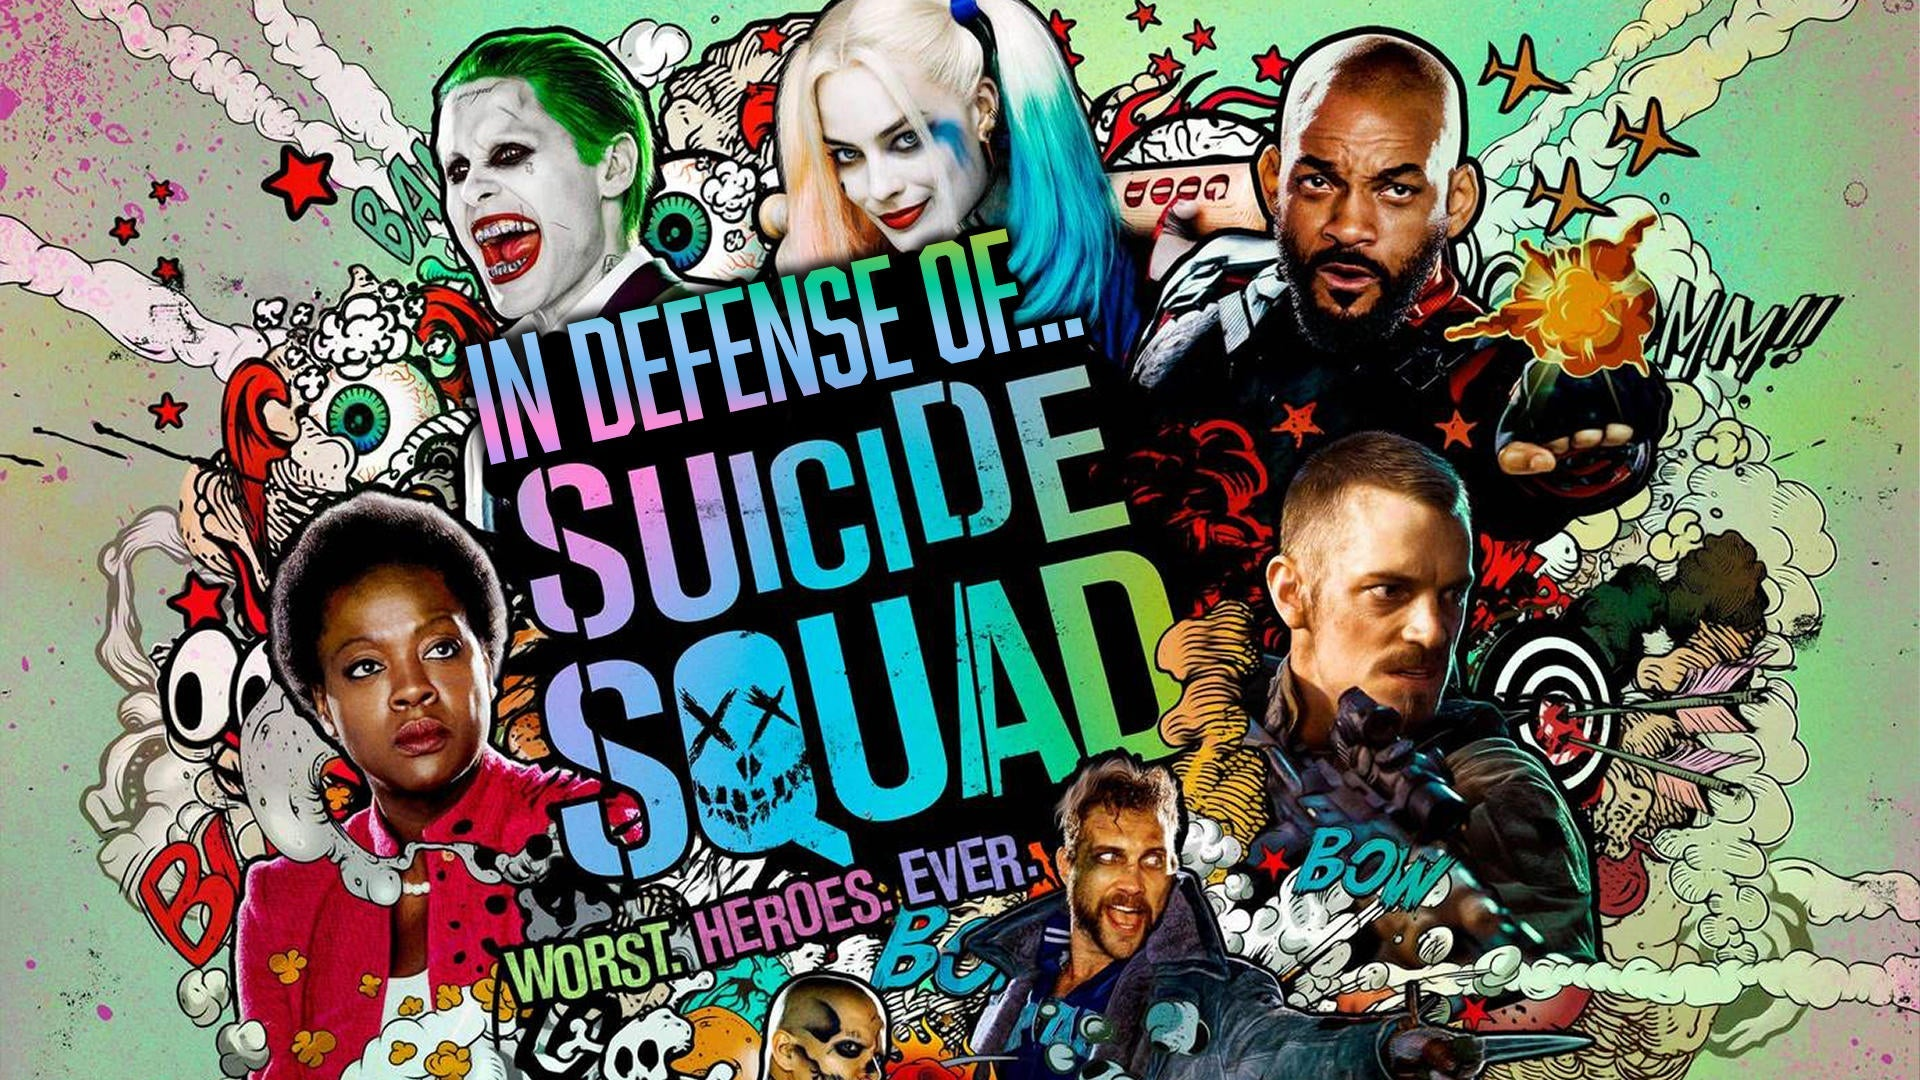 In Defense of Suicide Squad (2016)